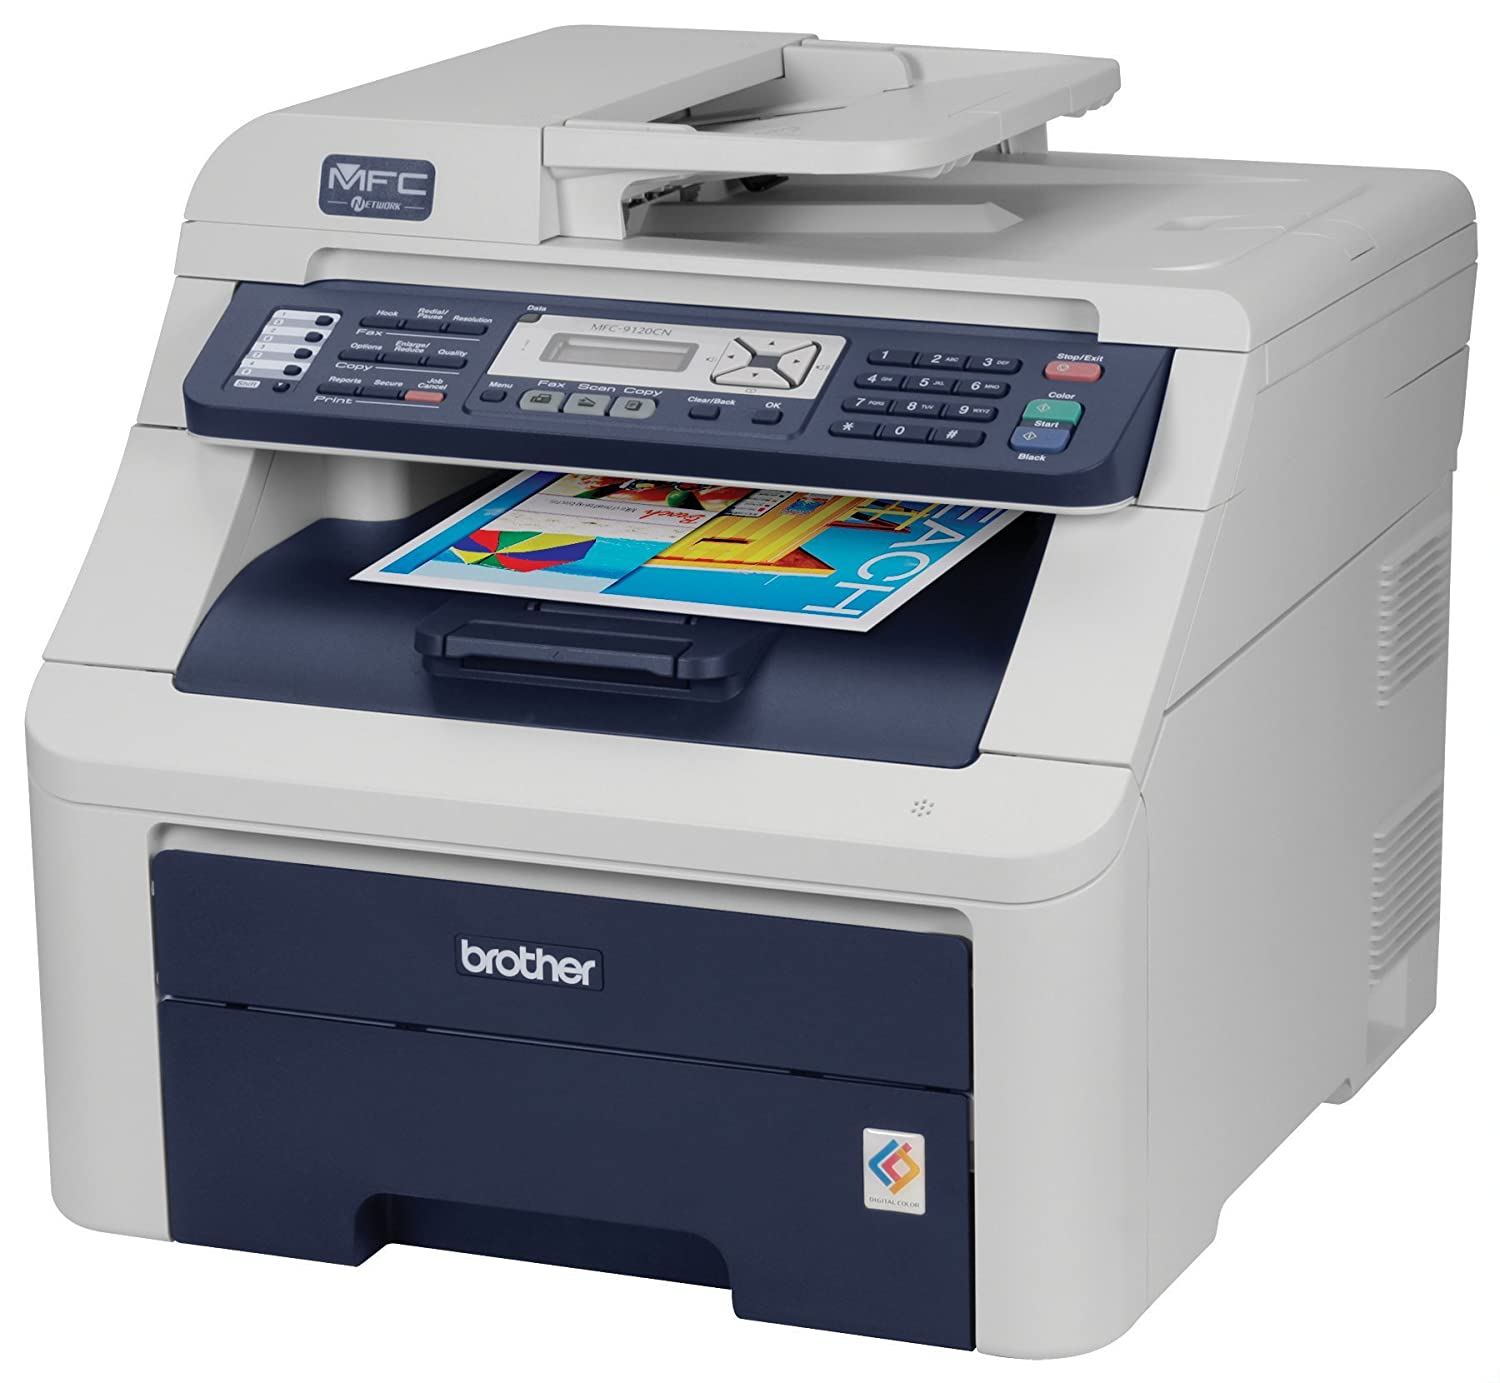 Amazon.com: Brother MFC-9120CN Color All-in-One Printer, con ...